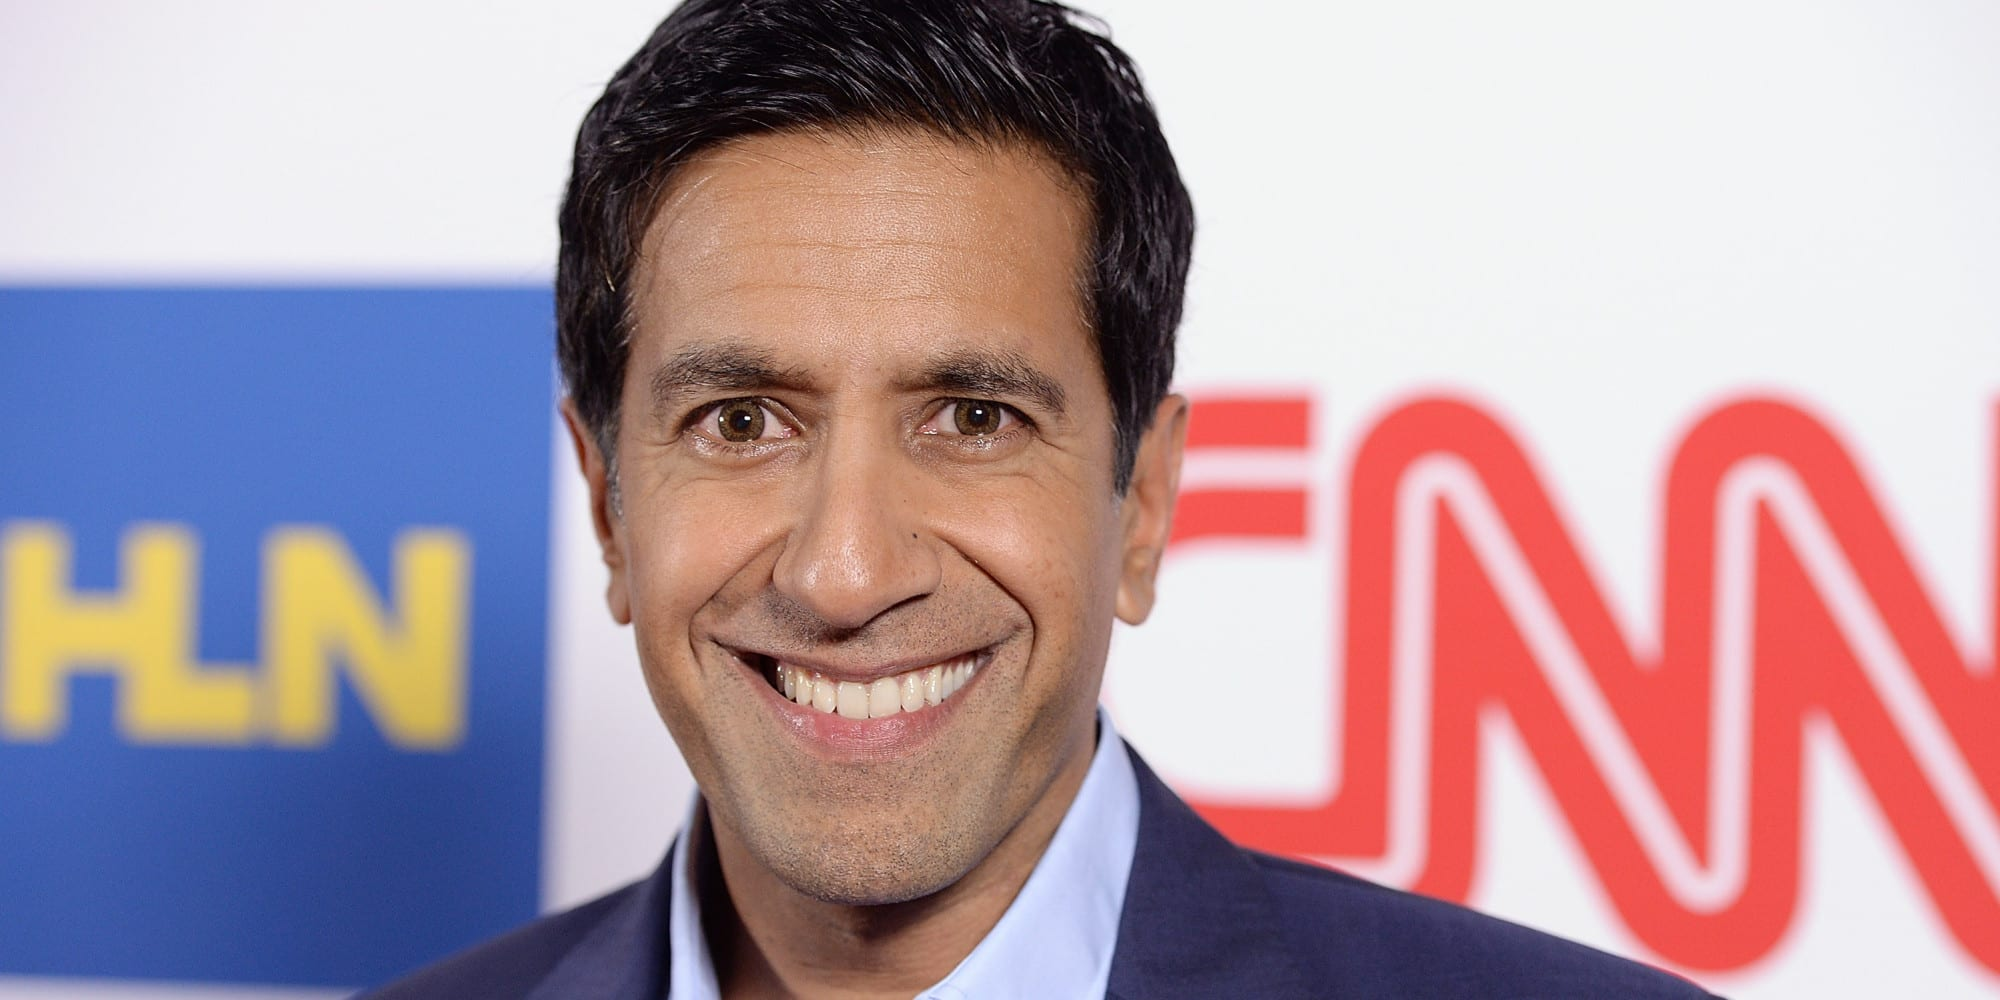 PASADENA, CA - JANUARY 10: Dr. Sanjay Gupta attends the CNN Worldwide All-Star Party At TCA at Langham Hotel on January 10, 2014 in Pasadena, California. (Photo by Michael Kovac/WireImage)